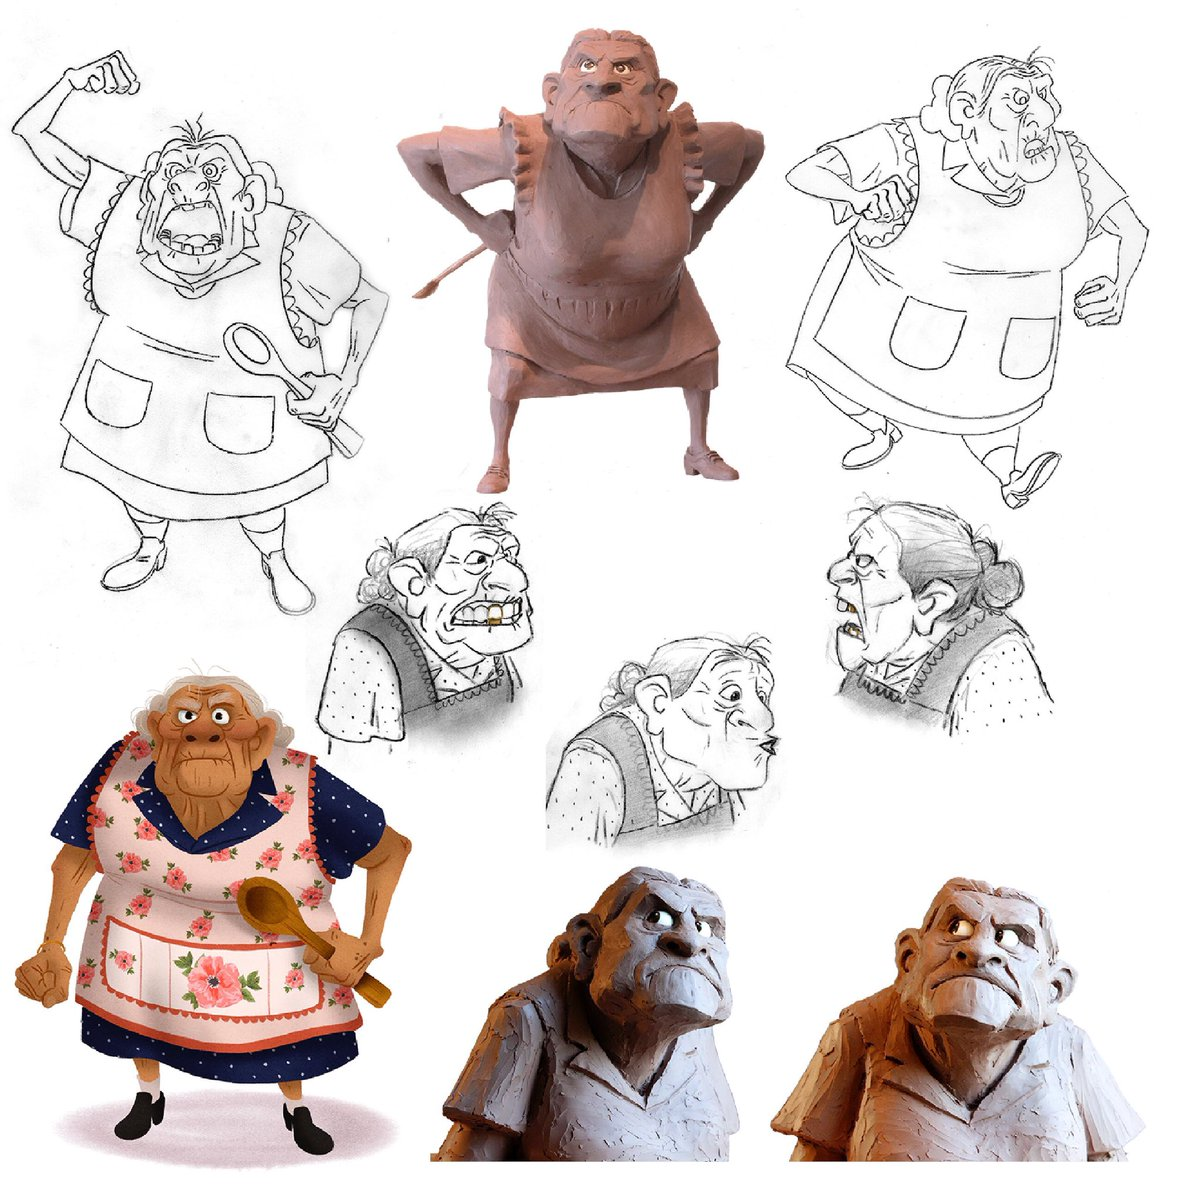 Daniel Arriaga On Twitter U0026quot;Abuelita From #pixarcoco Artofbook. Sheu2019s A Strong Woman Who Loves ...